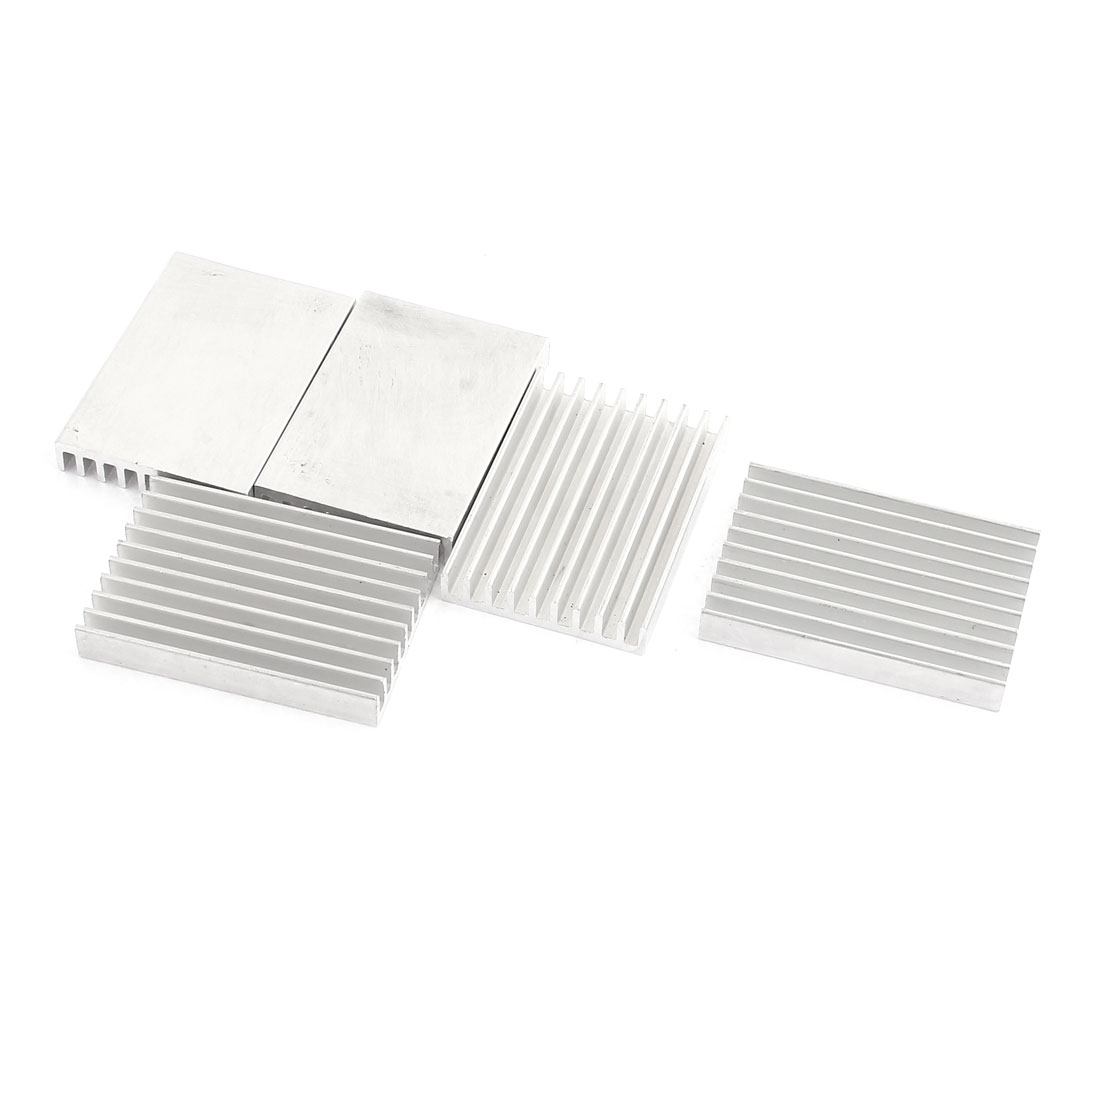 5 Pcs Aluminum Chipset Heatsink Cooling Fin 40 x 28 x 6mm for Power Transistor